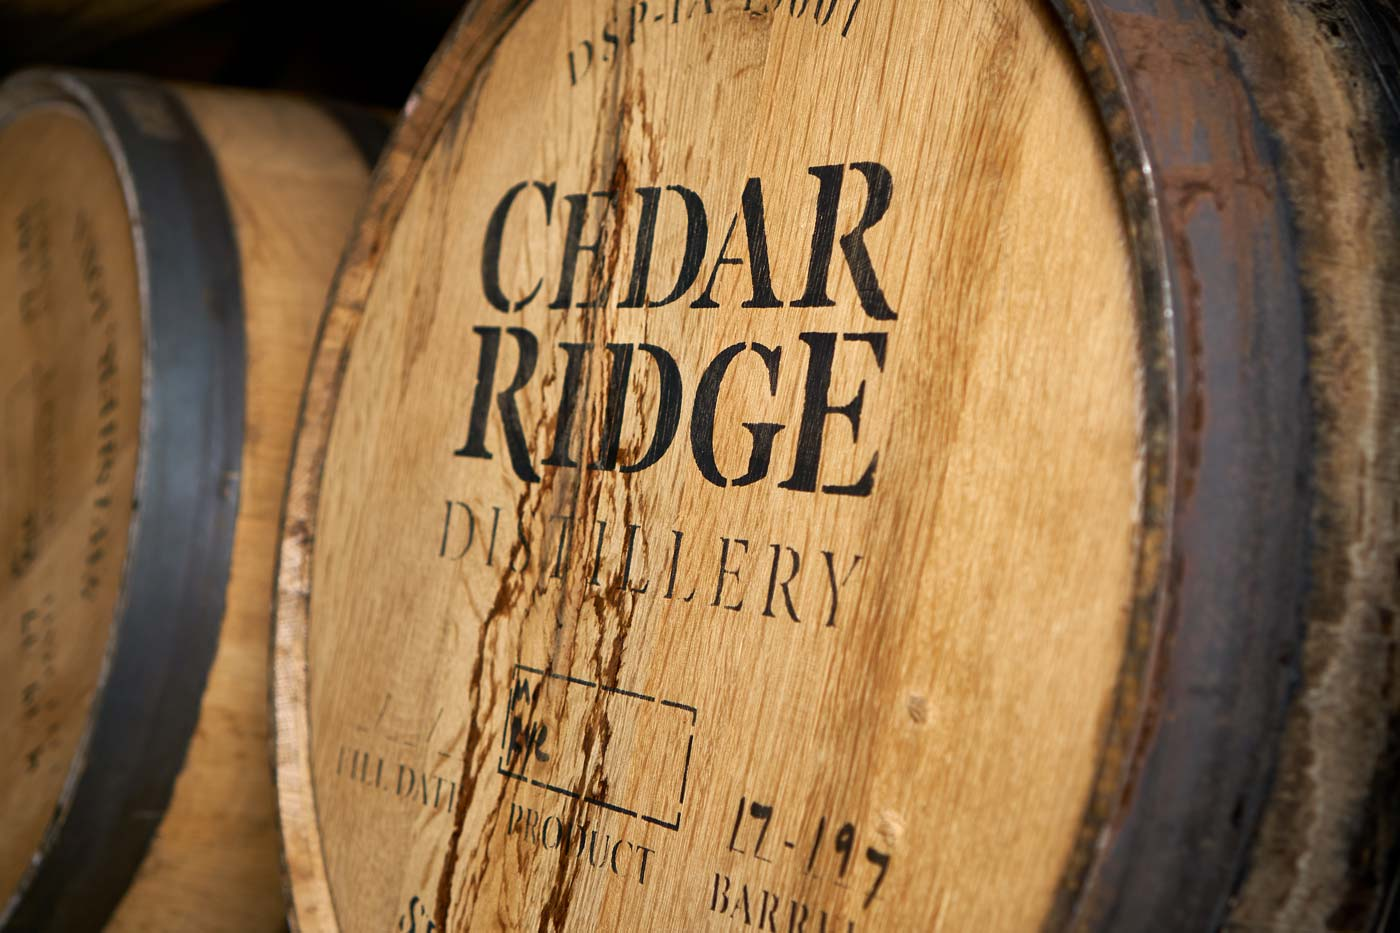 Cedar Ridge barrel